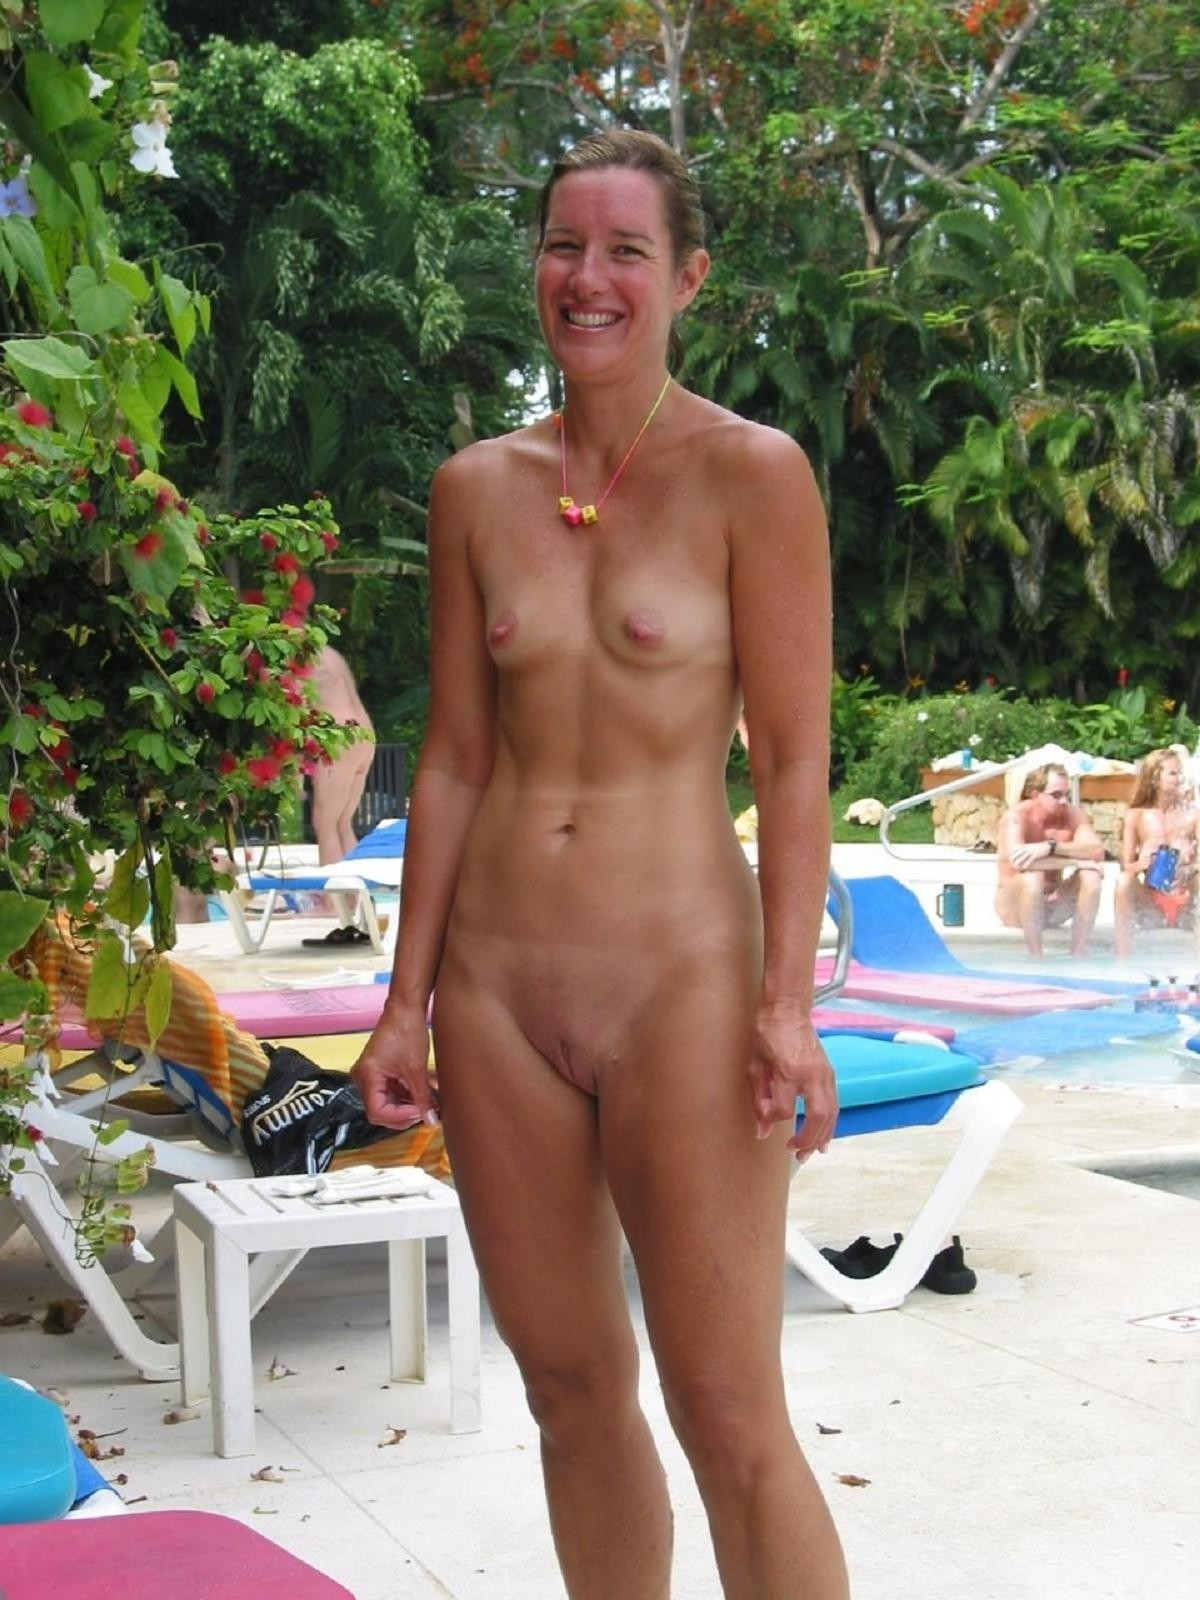 Recommend Titless girls naked porn thank